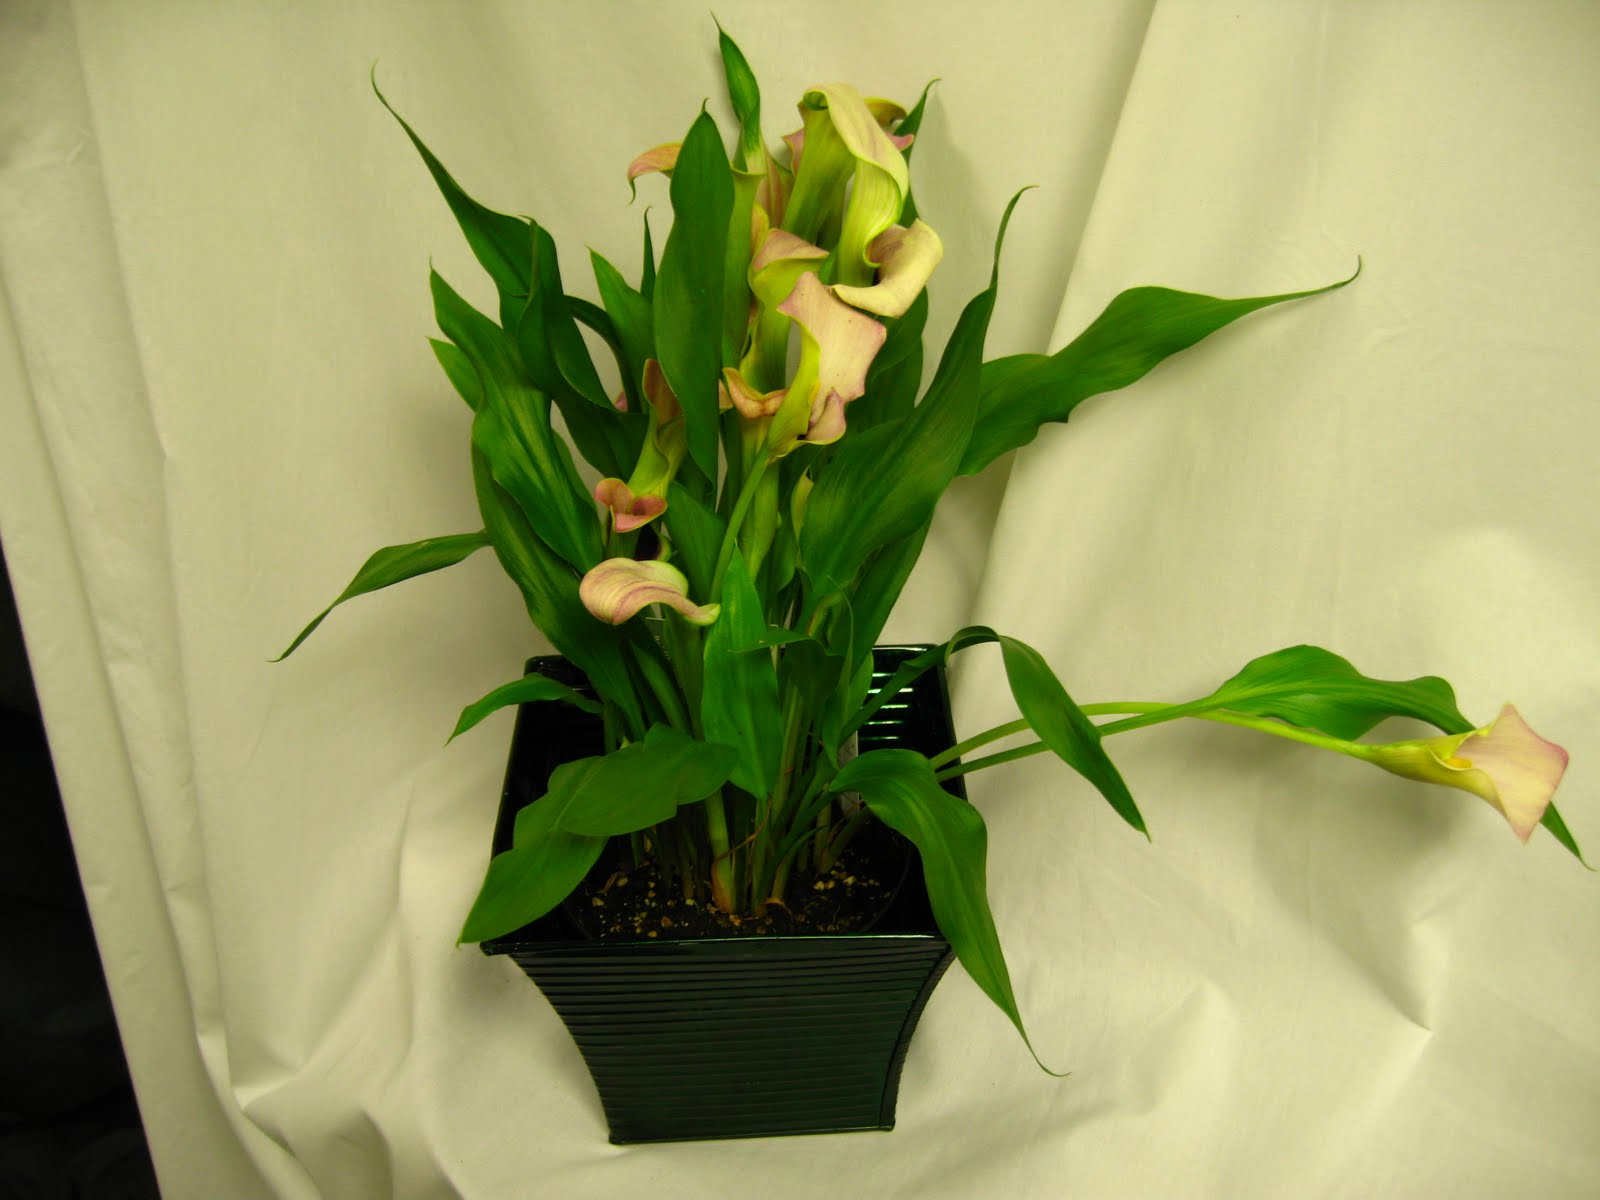 Pdi Plants Blog Why Potted Calla Lilies Are A Good Indoor Plant